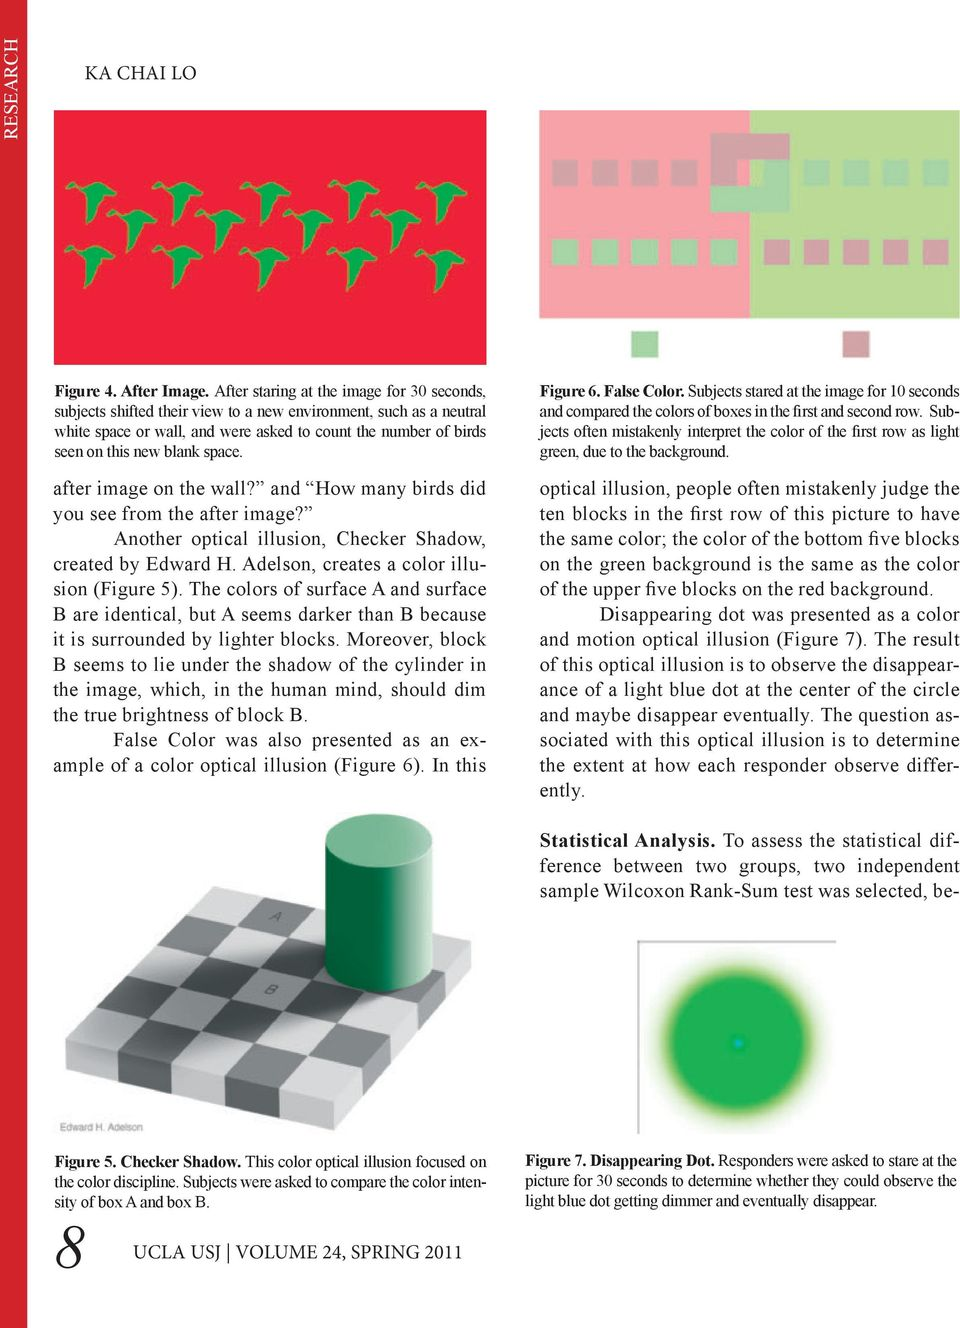 space. after image on the wall? and How many birds did you see from the after image? Another optical illusion, Checker Shadow, created by Edward H. Adelson, creates a color illusion (Figure 5).